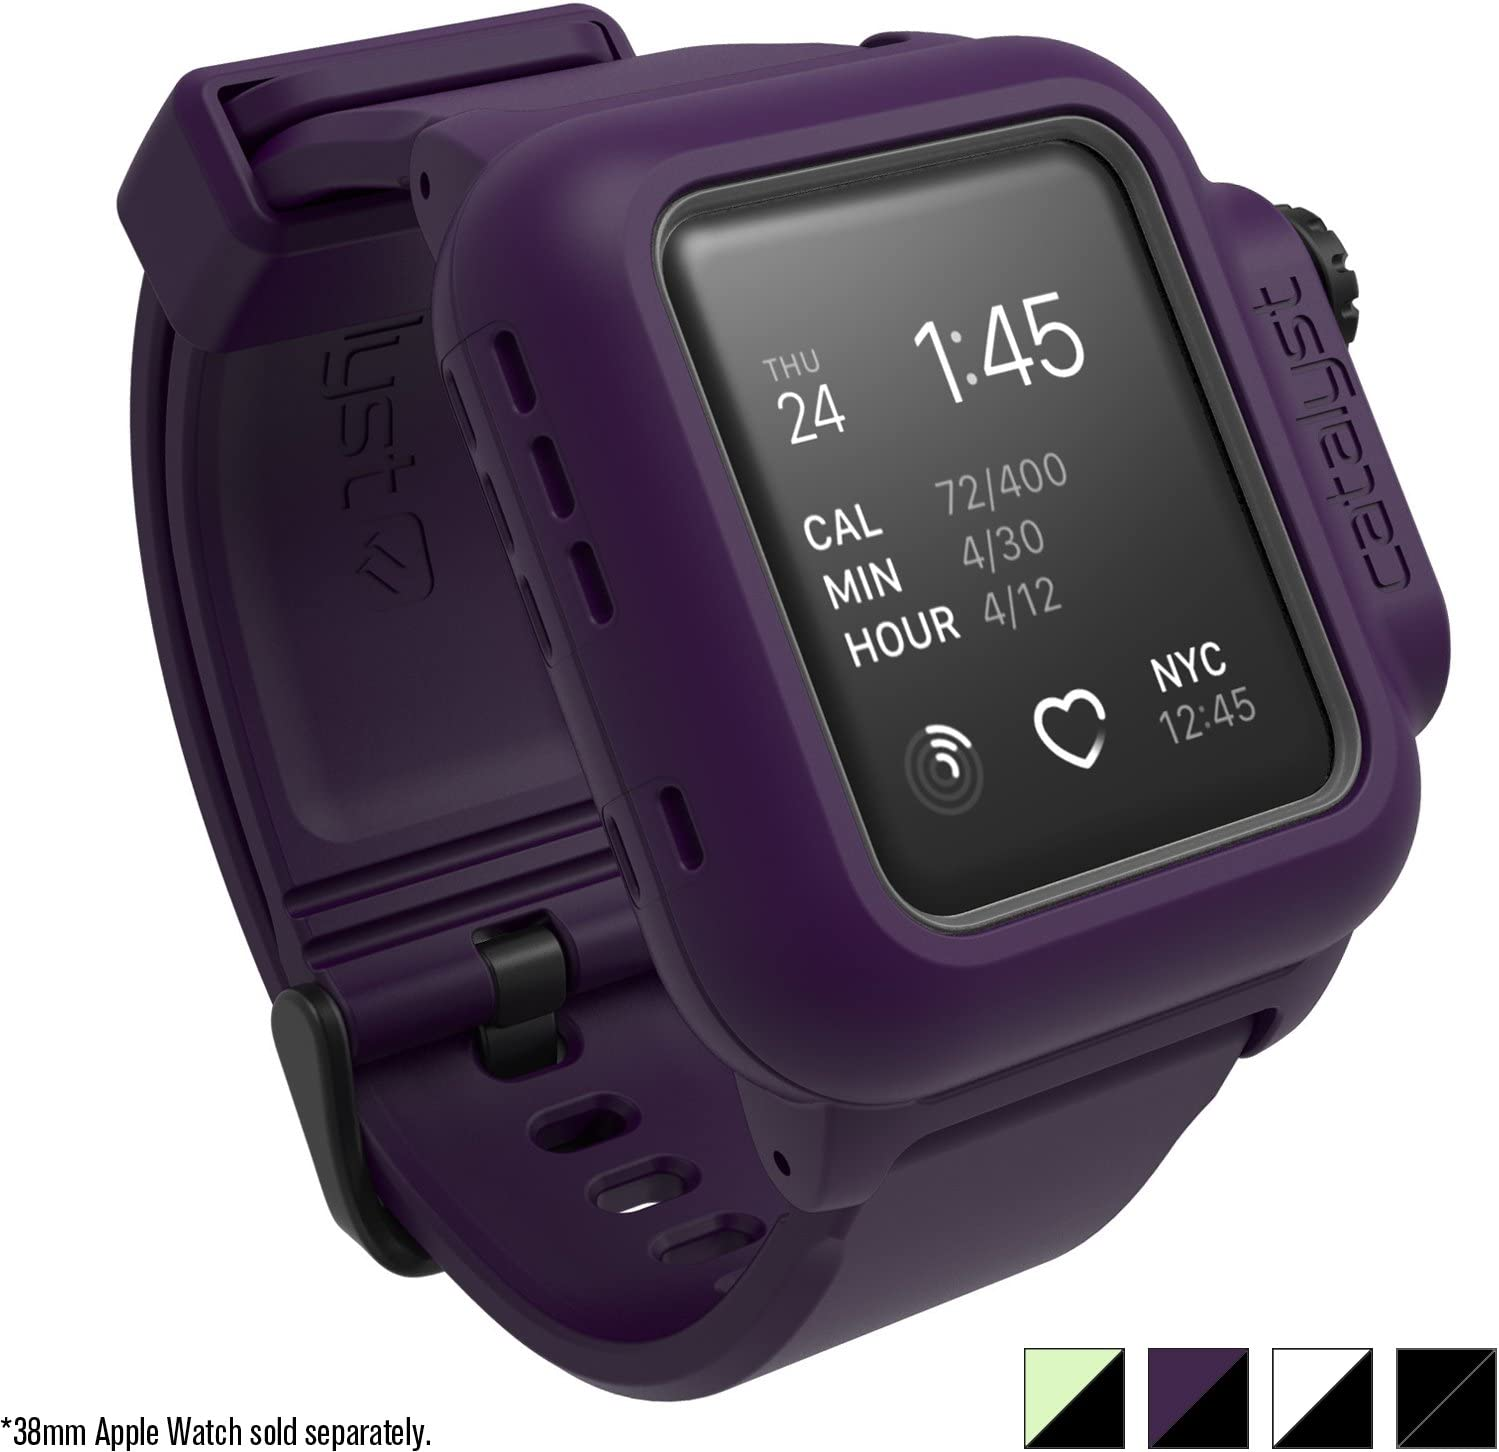 Apple Series 2 38mm Waterproof Watch Case by Catalyst, and Shock Proof Premium Material Quality for Hiking, Swimming, Beach Trips, Kayaking, Cruise Accessories (Deep Plum)